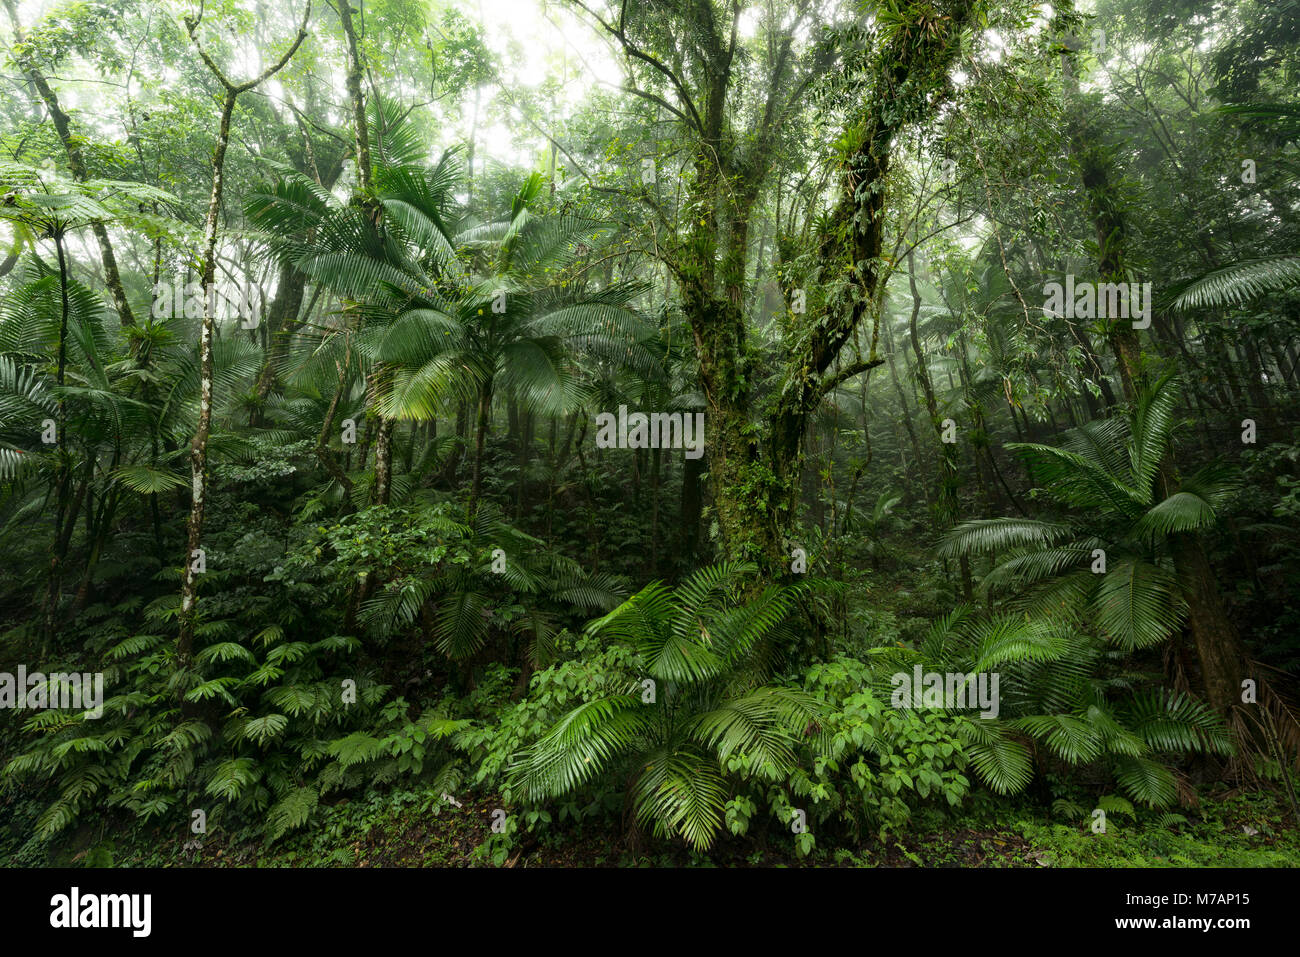 Scène jungle verte à partir de la Rainforest Yunque sur l'île des Caraïbes Puerto Rico Photo Stock